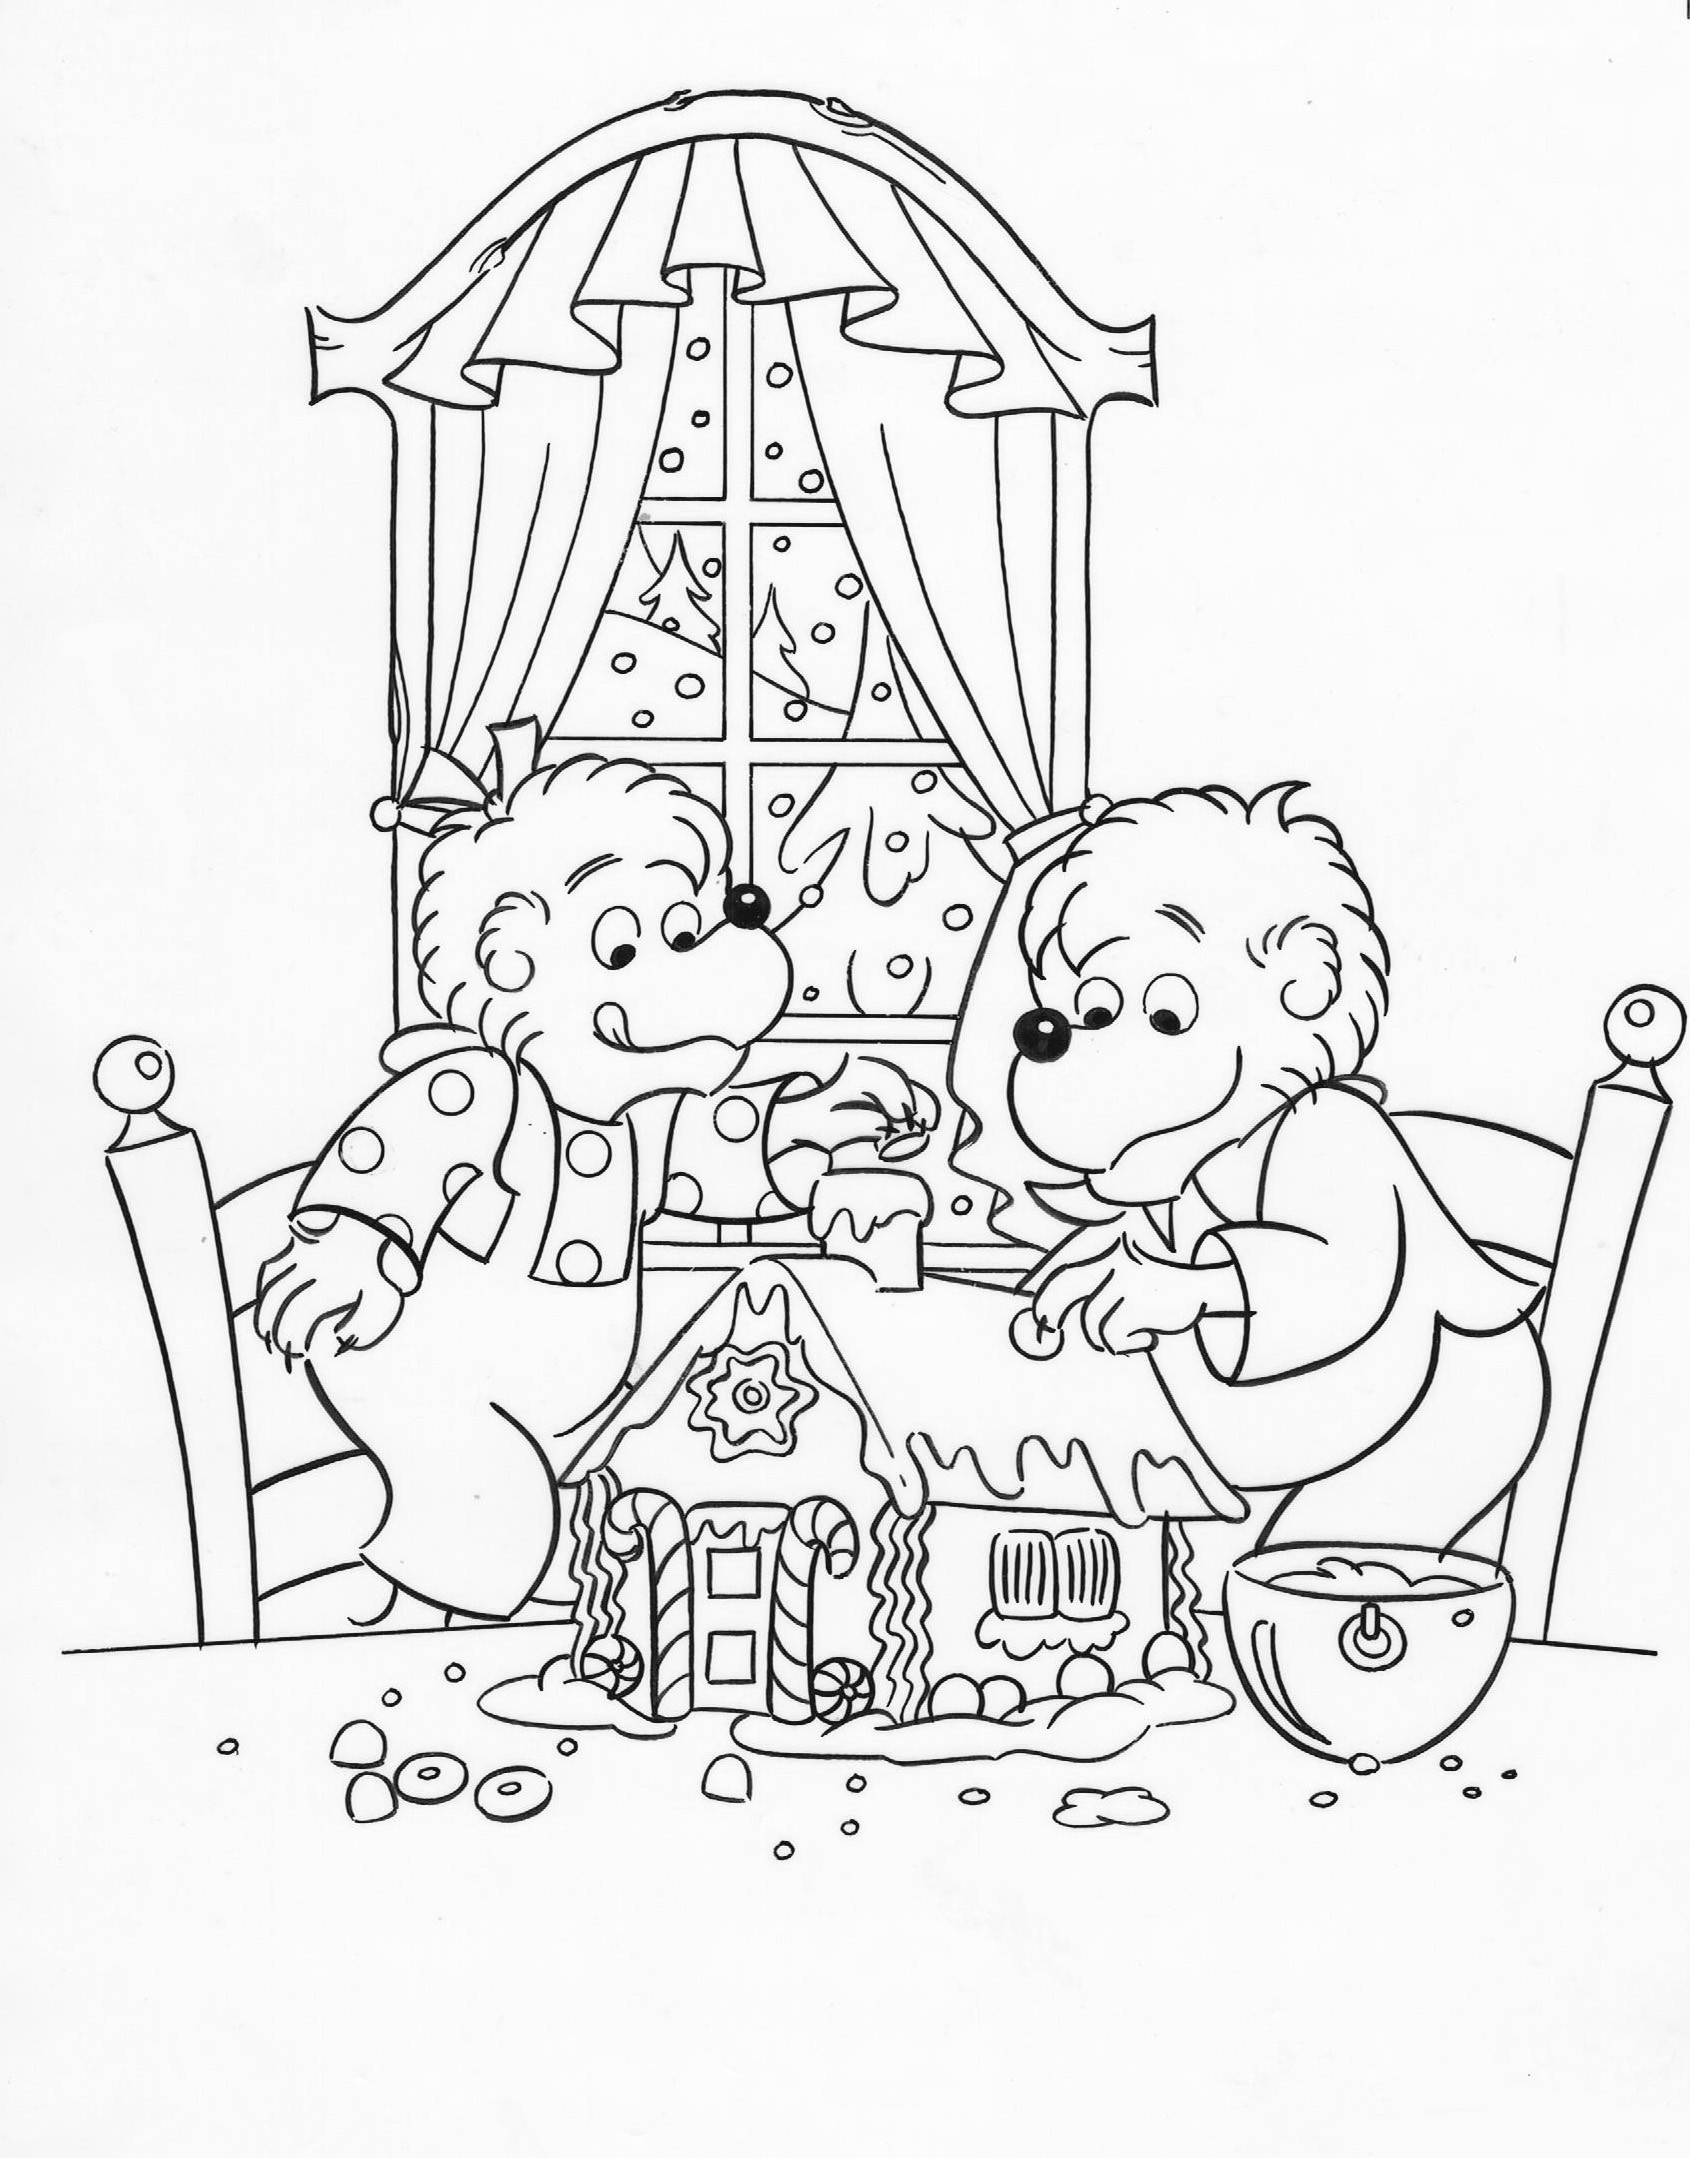 Berenstain Bears Coloring Pages At Getcolorings